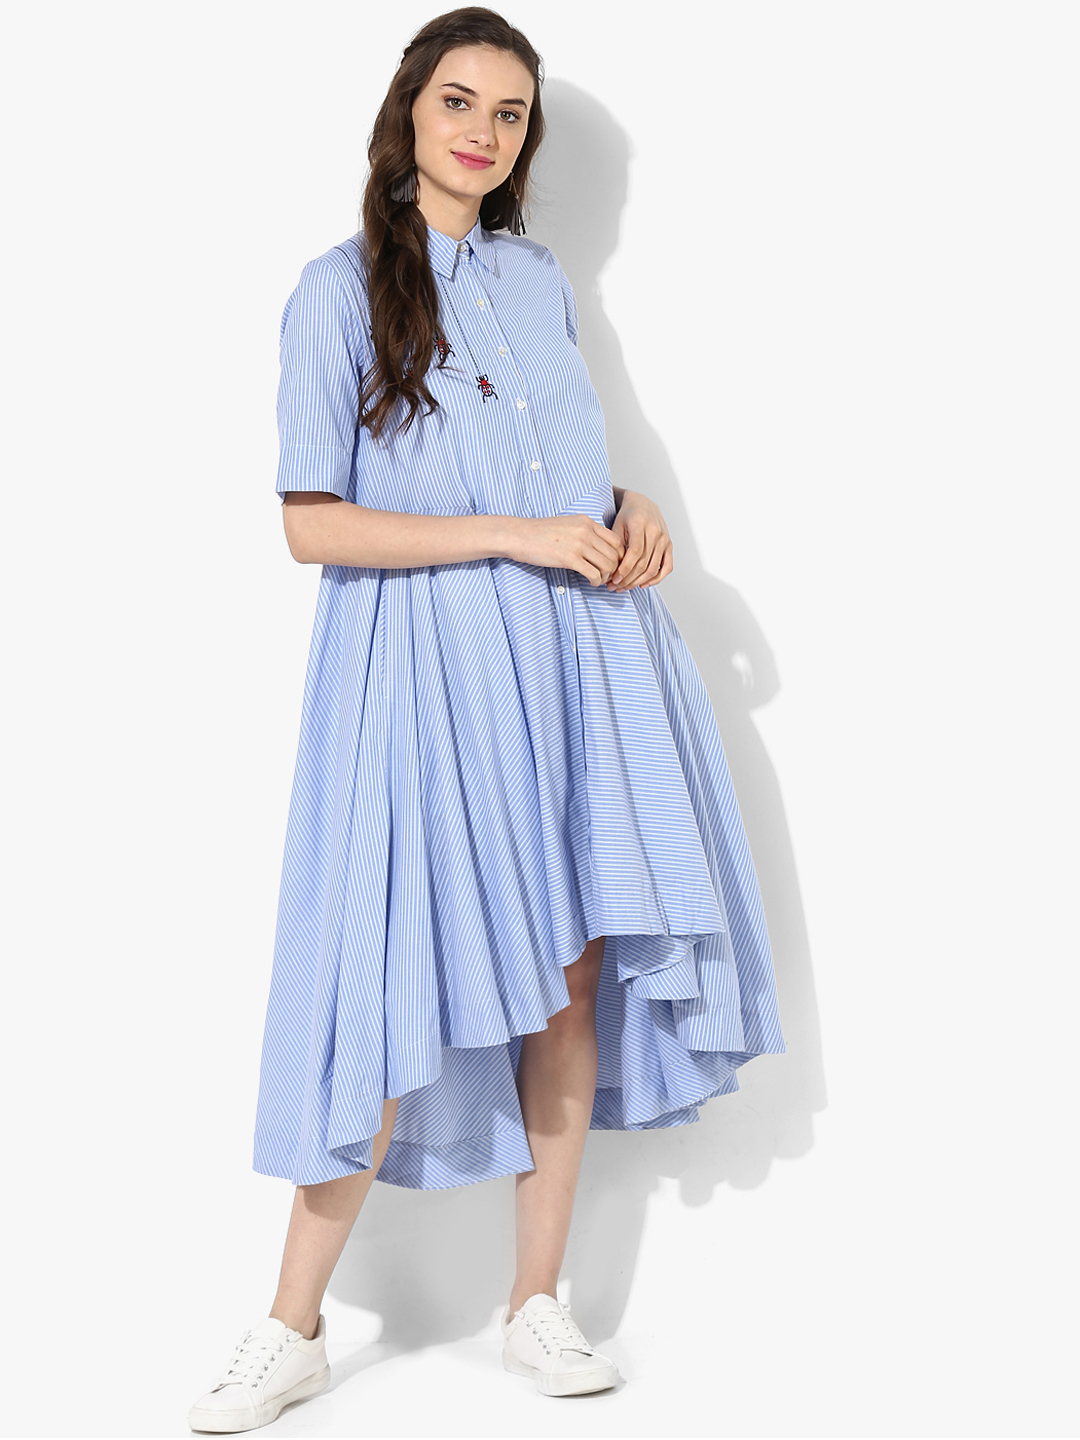 a43903dc70 Buy Sangria Women Off-White And Blue Striped A-Line Dress Online ...